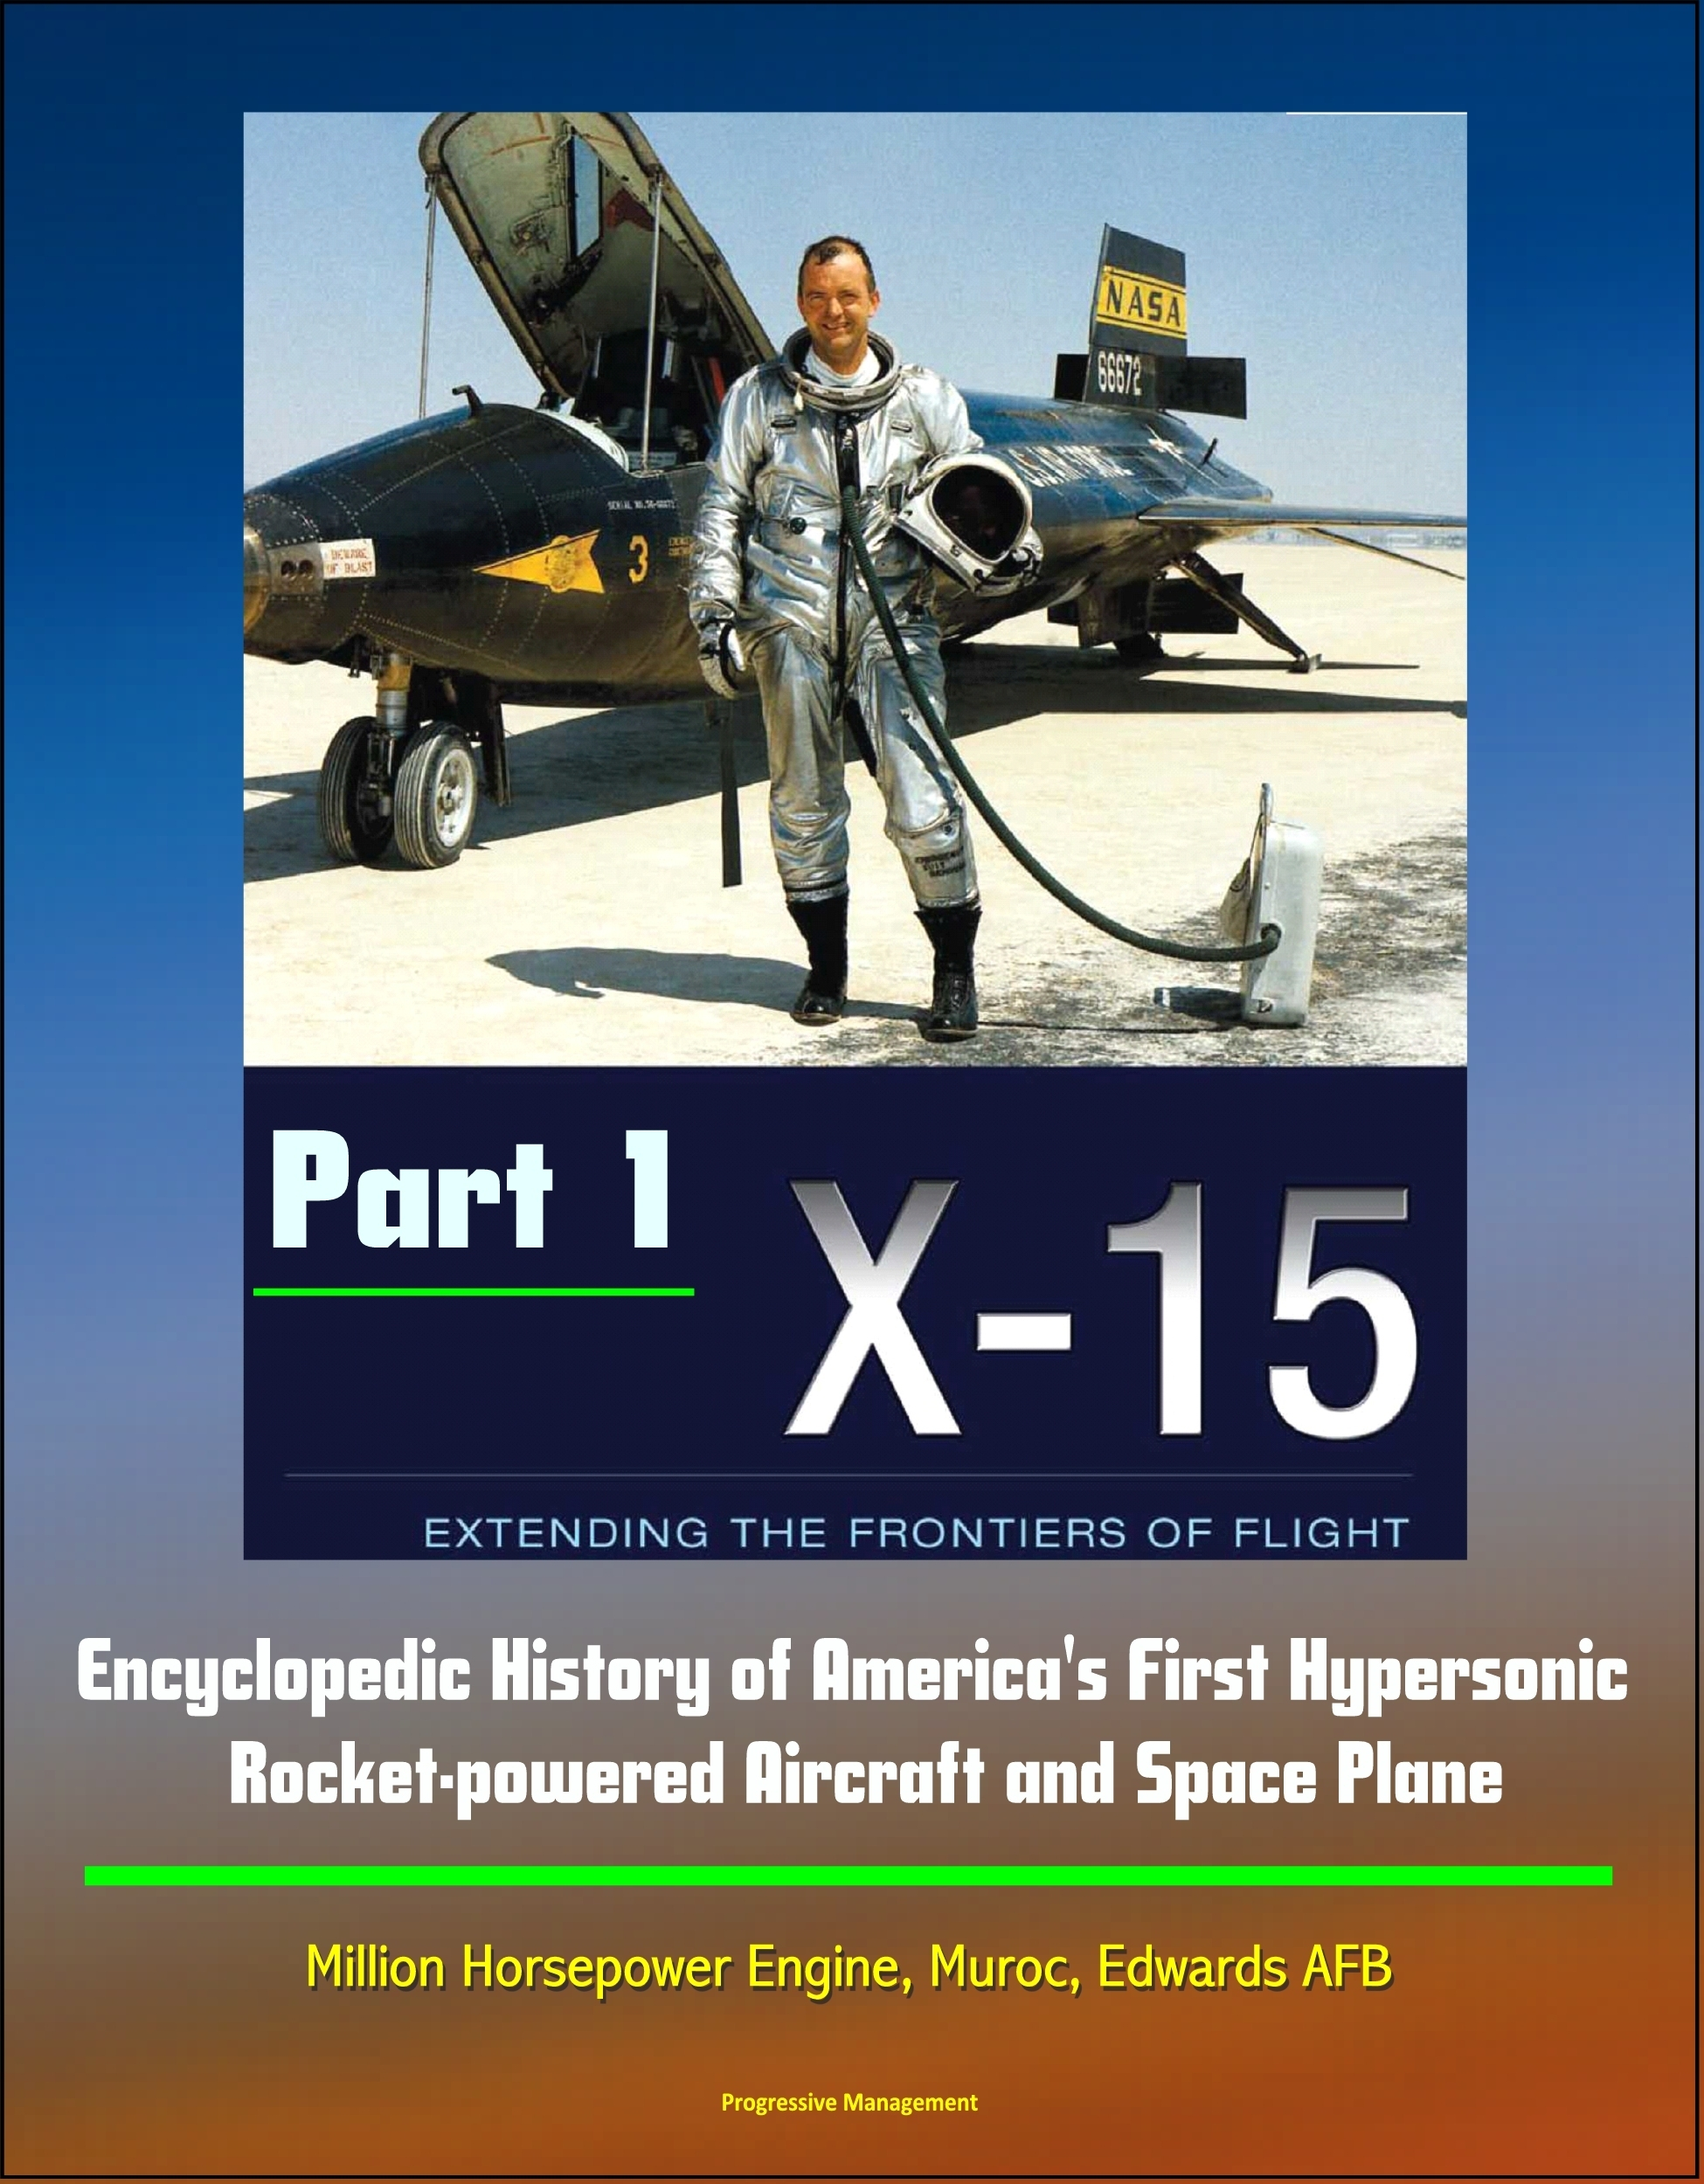 X-15: Extending the Frontiers of Flight - Encyclopedic History of Americas First Hypersonic Rocket-powered Aircraft and Space Plane - Million Horsepower Engine, Muroc, Edwards AFB (Part 1)  by  Progressive Management